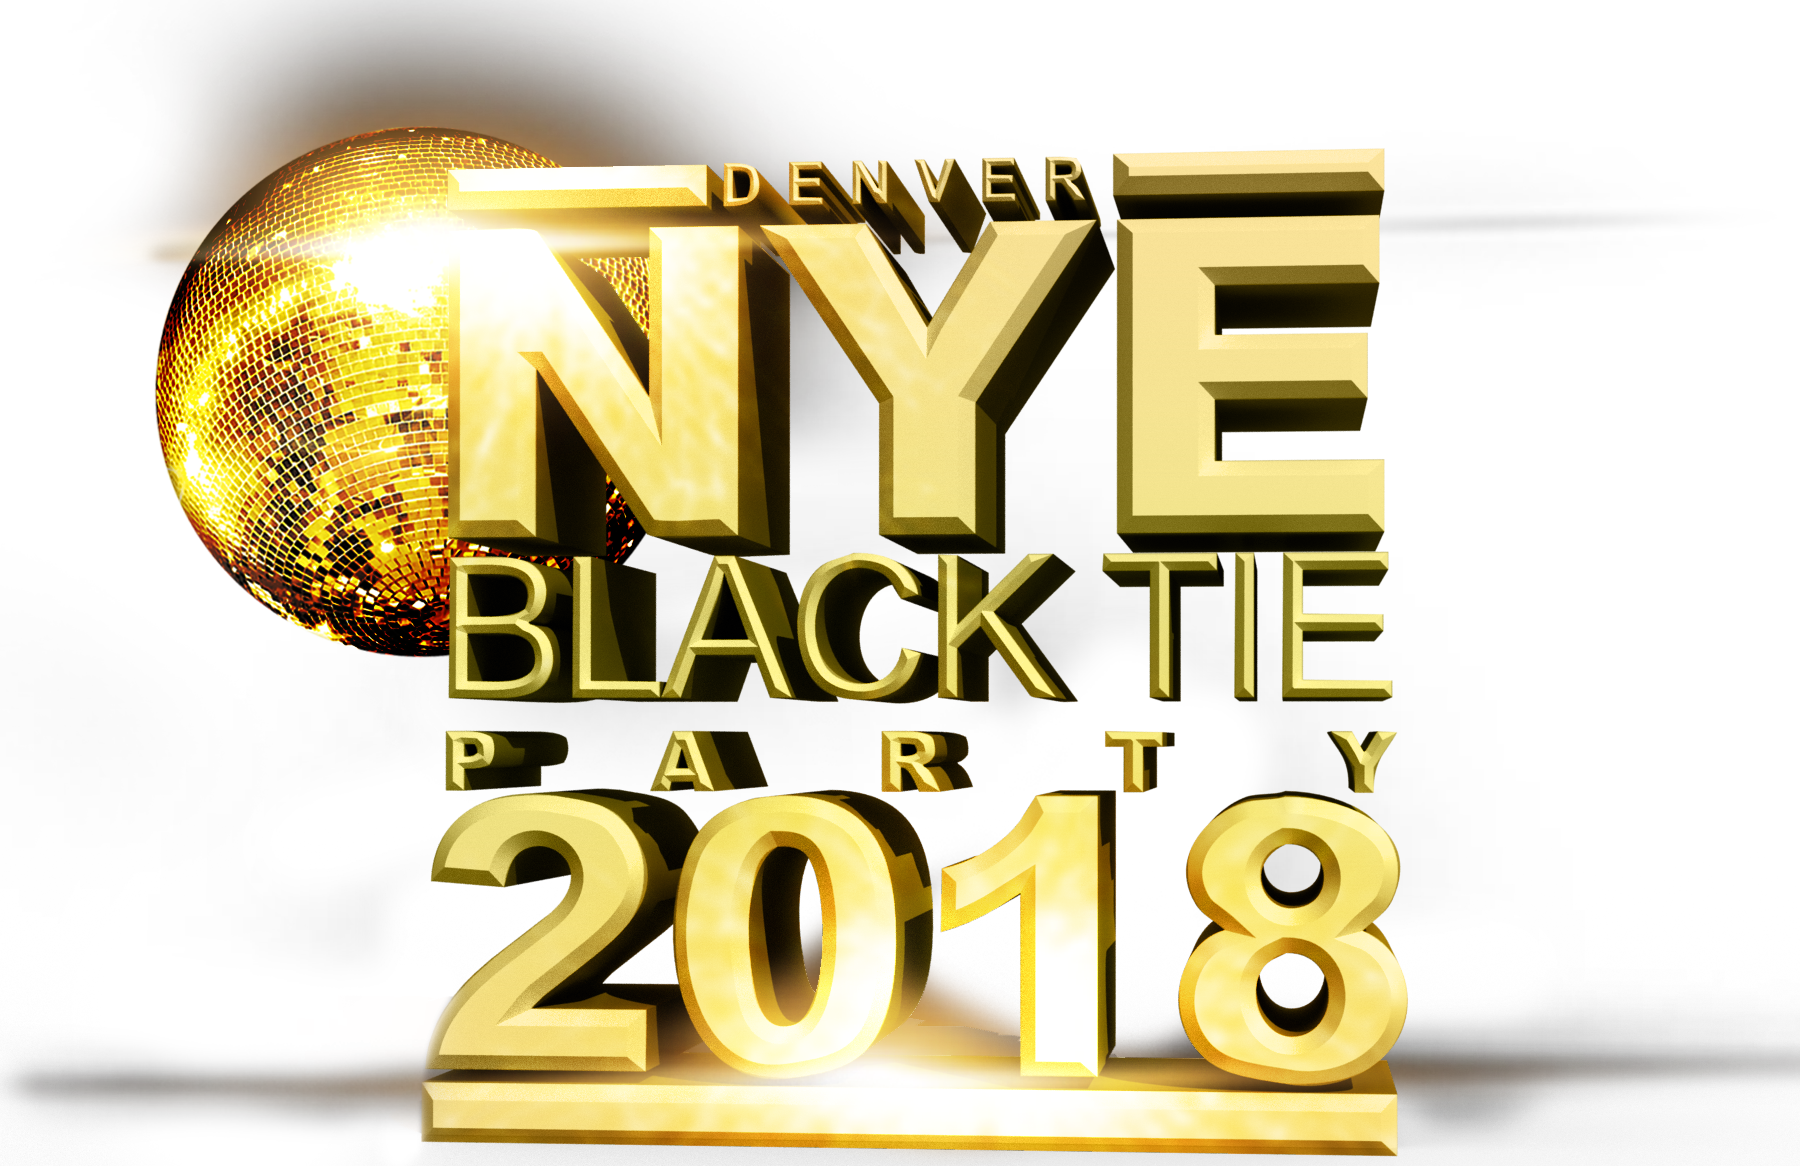 New years eve ball png. Denver black tie party